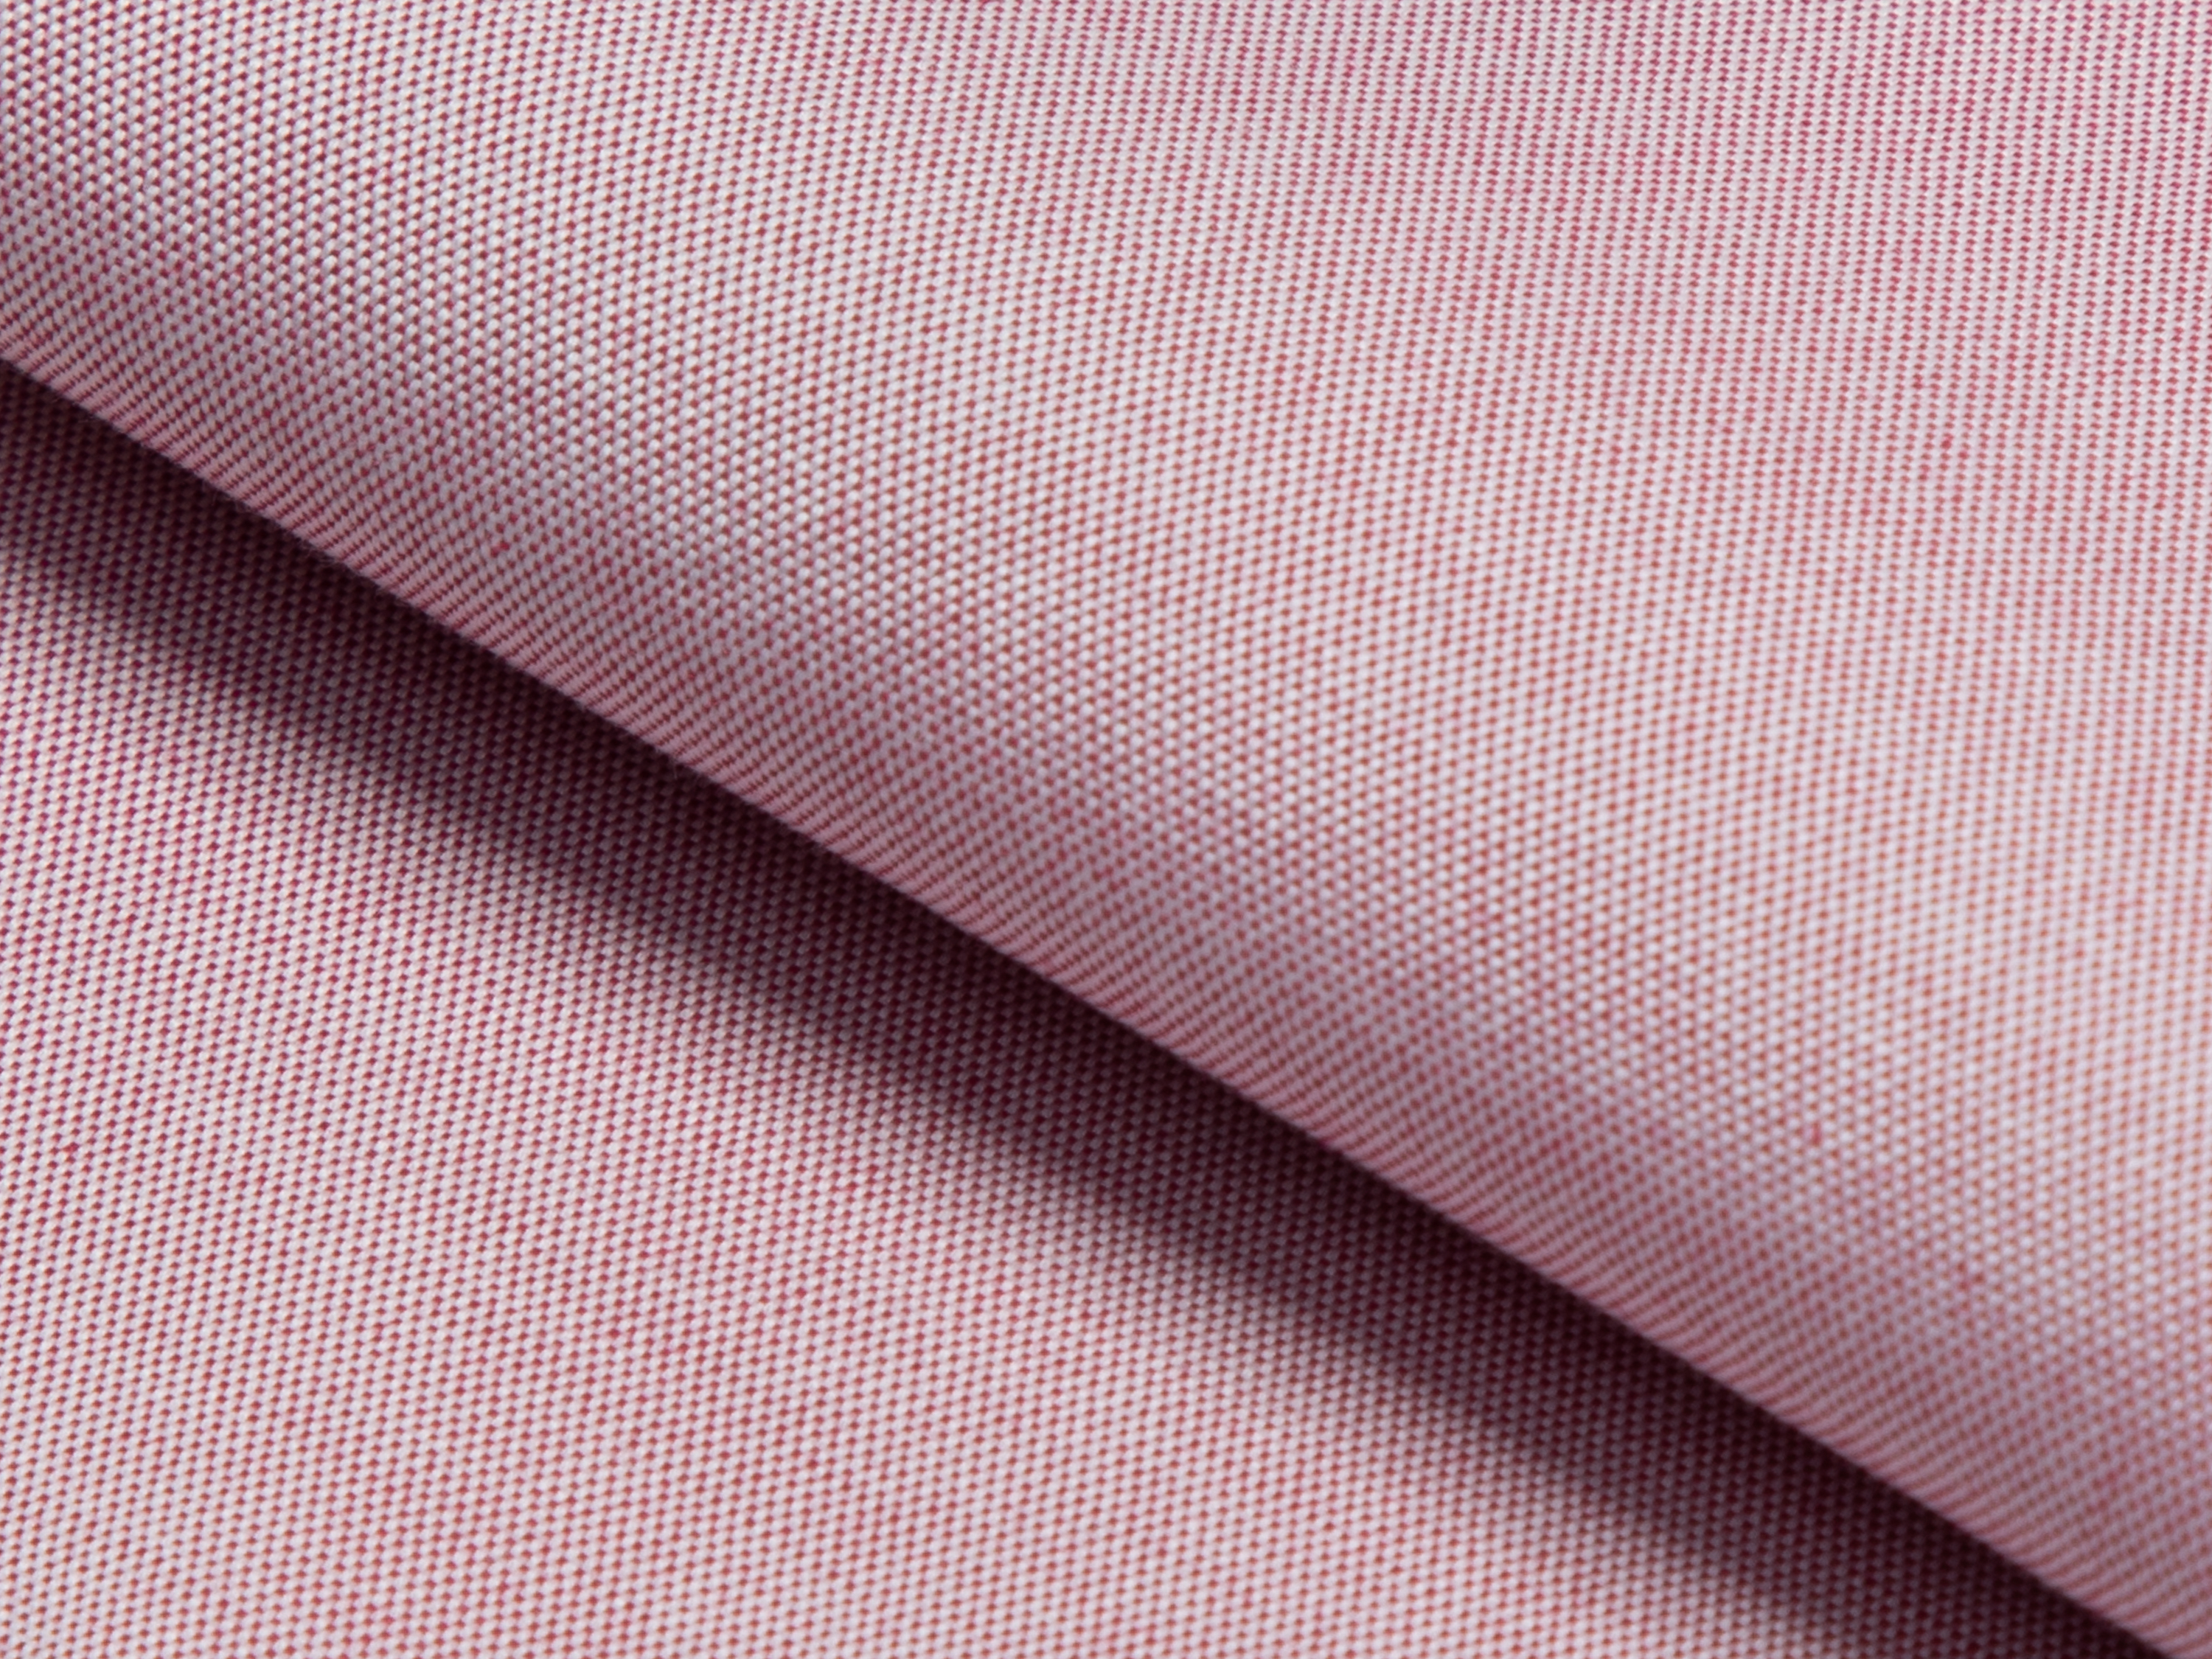 Buy tailor made shirts online - PINPOINT LUXURY (NEW) - Pinpoint Salmon